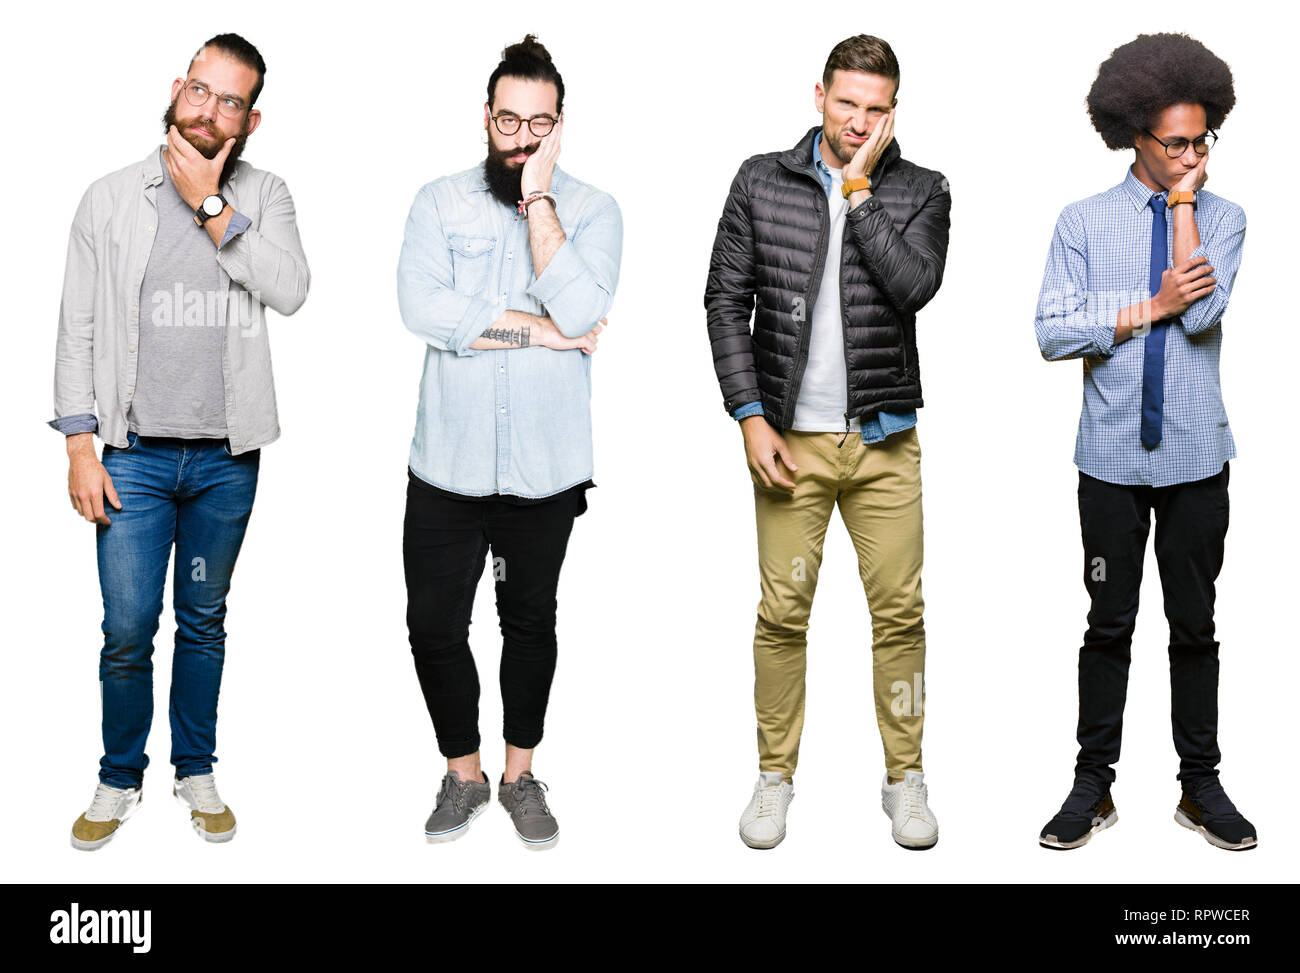 Collage of group of young men over white isolated background thinking looking tired and bored with depression problems with crossed arms. Stock Photo